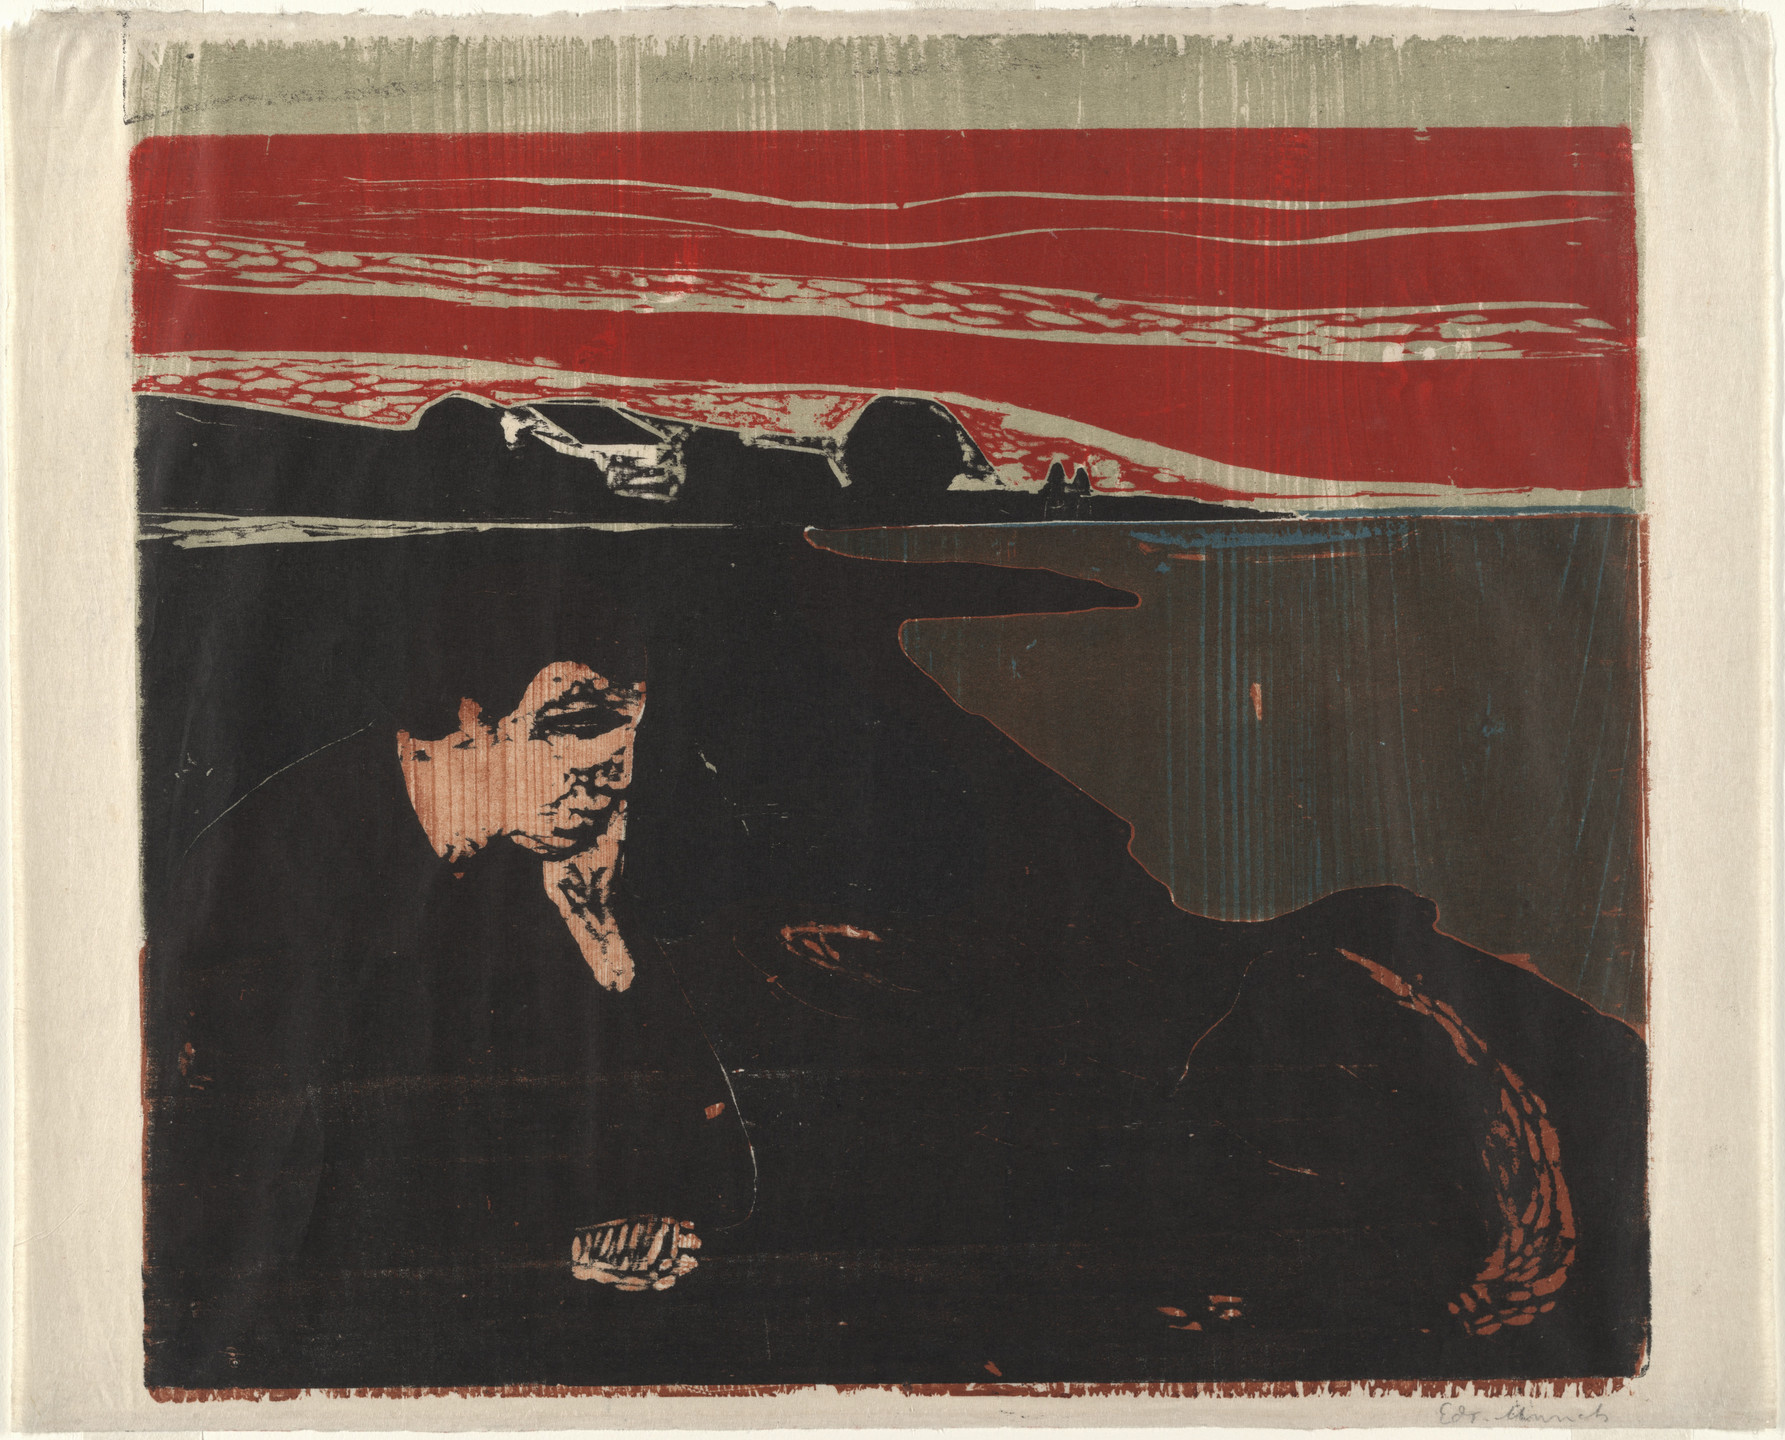 Edvard Munch. Evening. Melancholy I (Aften. Melankoli I). 1896